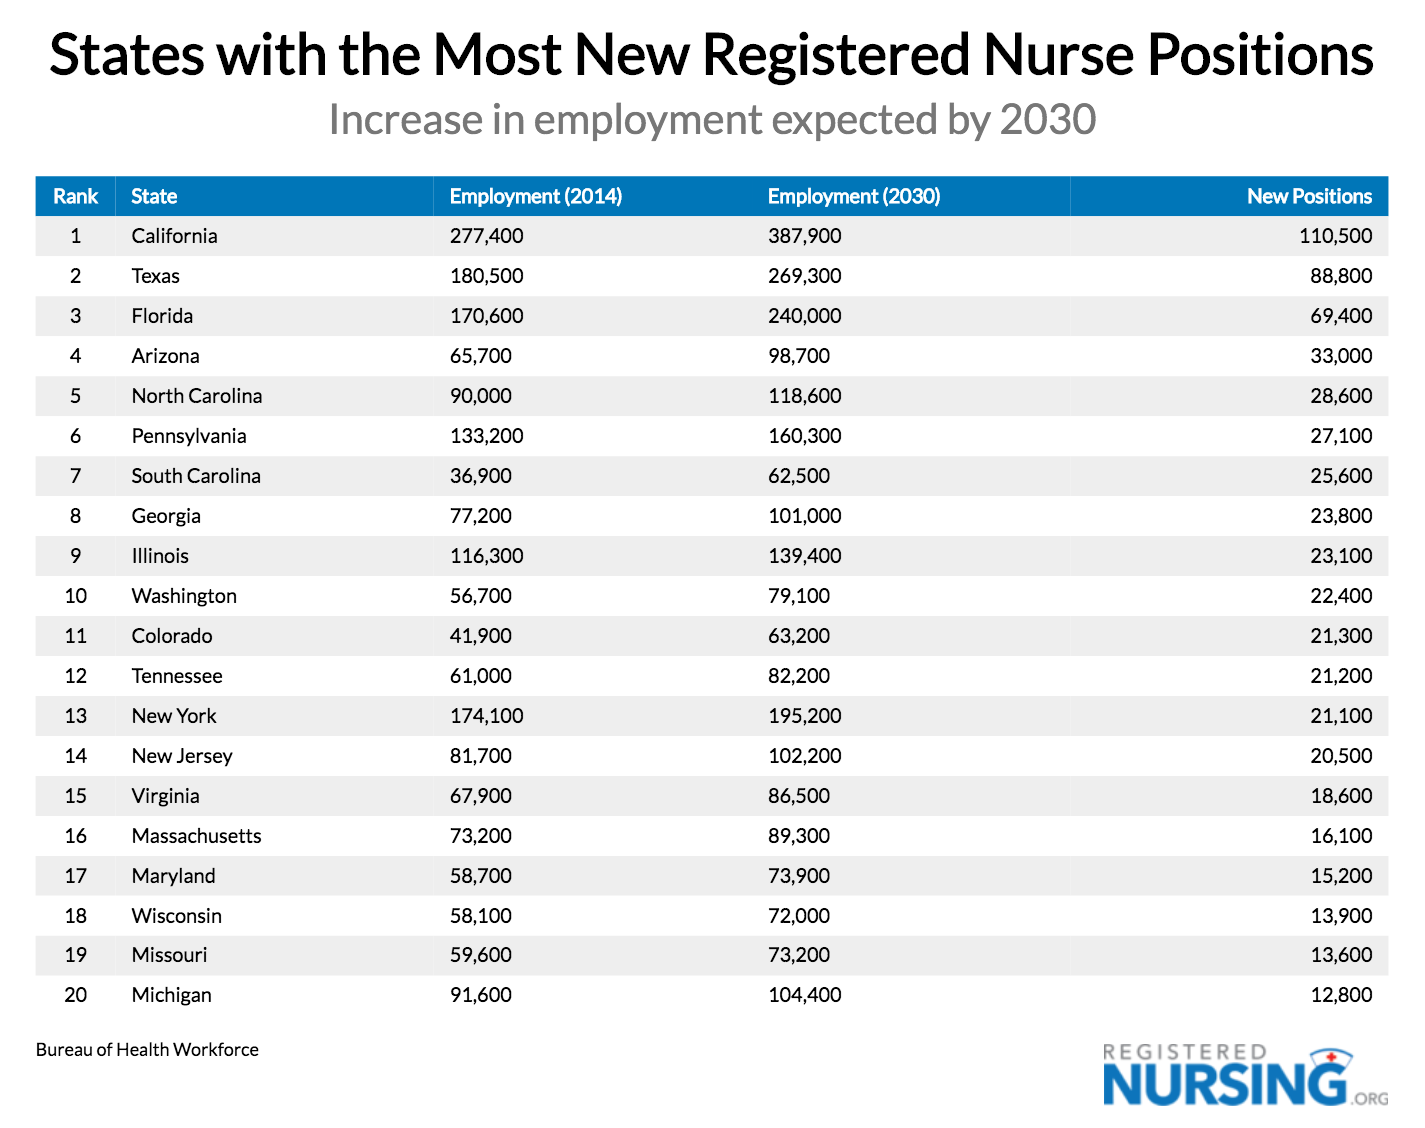 Most New RN Positions by State, Projected 2030